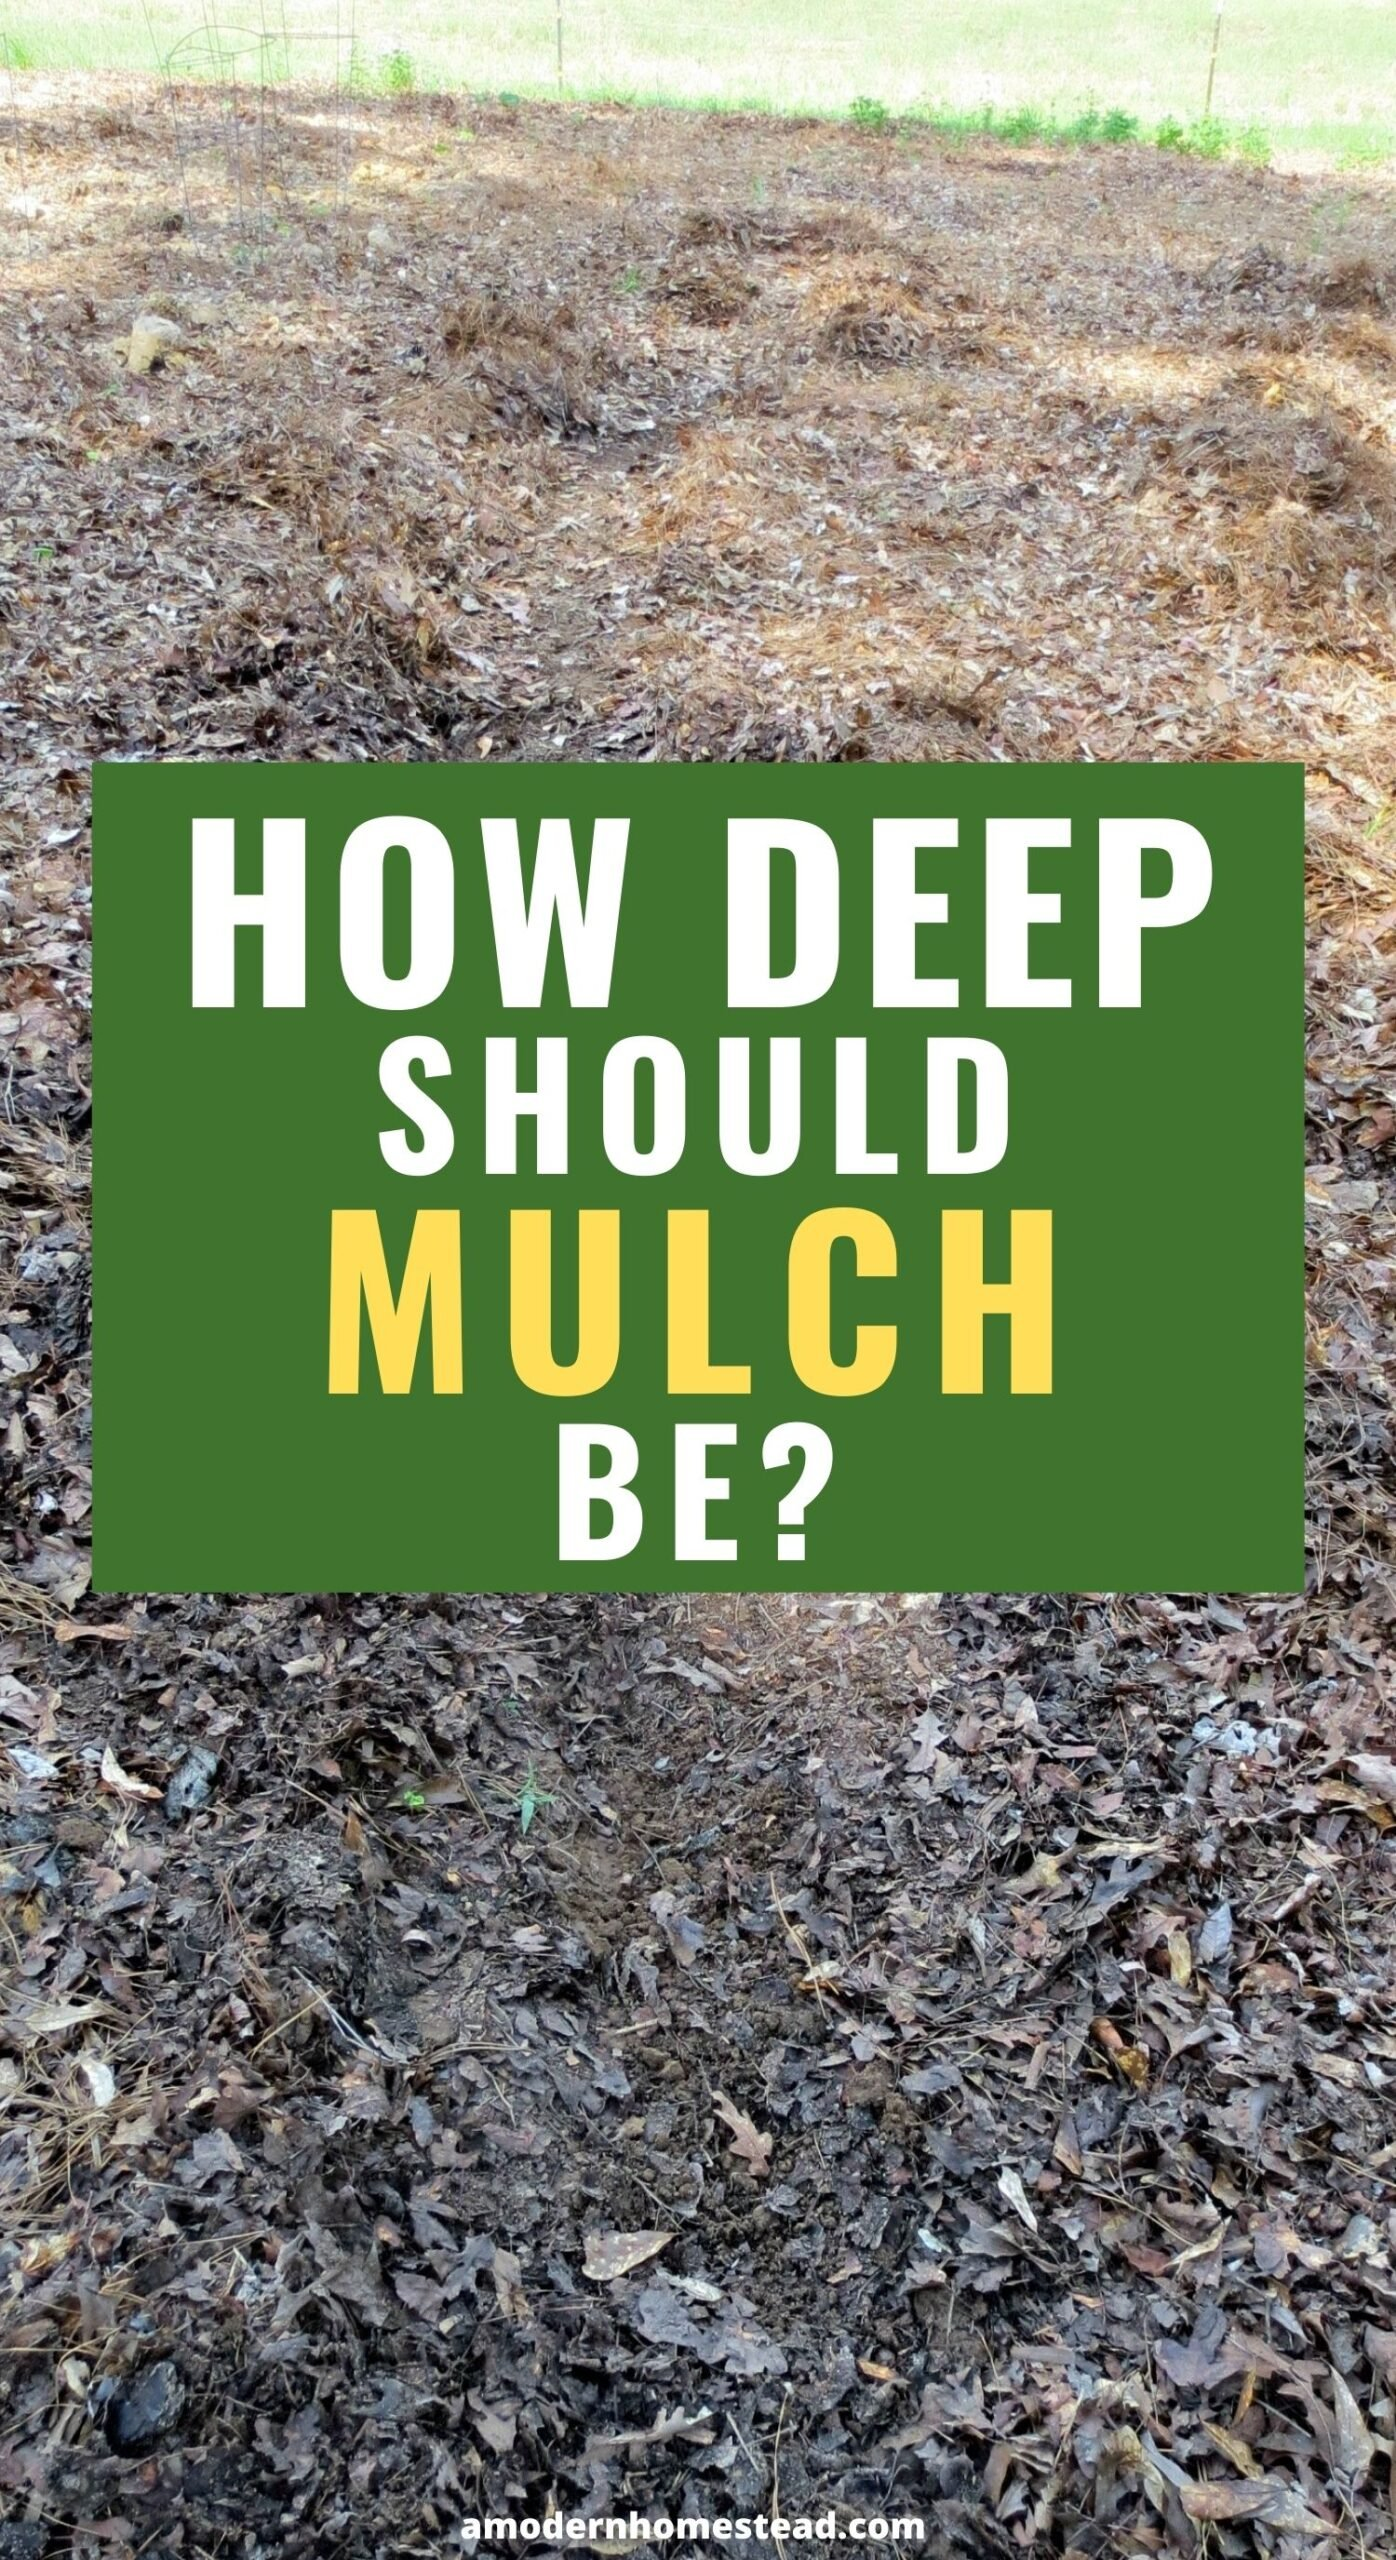 """promotional image featuring deep mulch in a garden and the question in text """"how deep should mulch be?"""""""